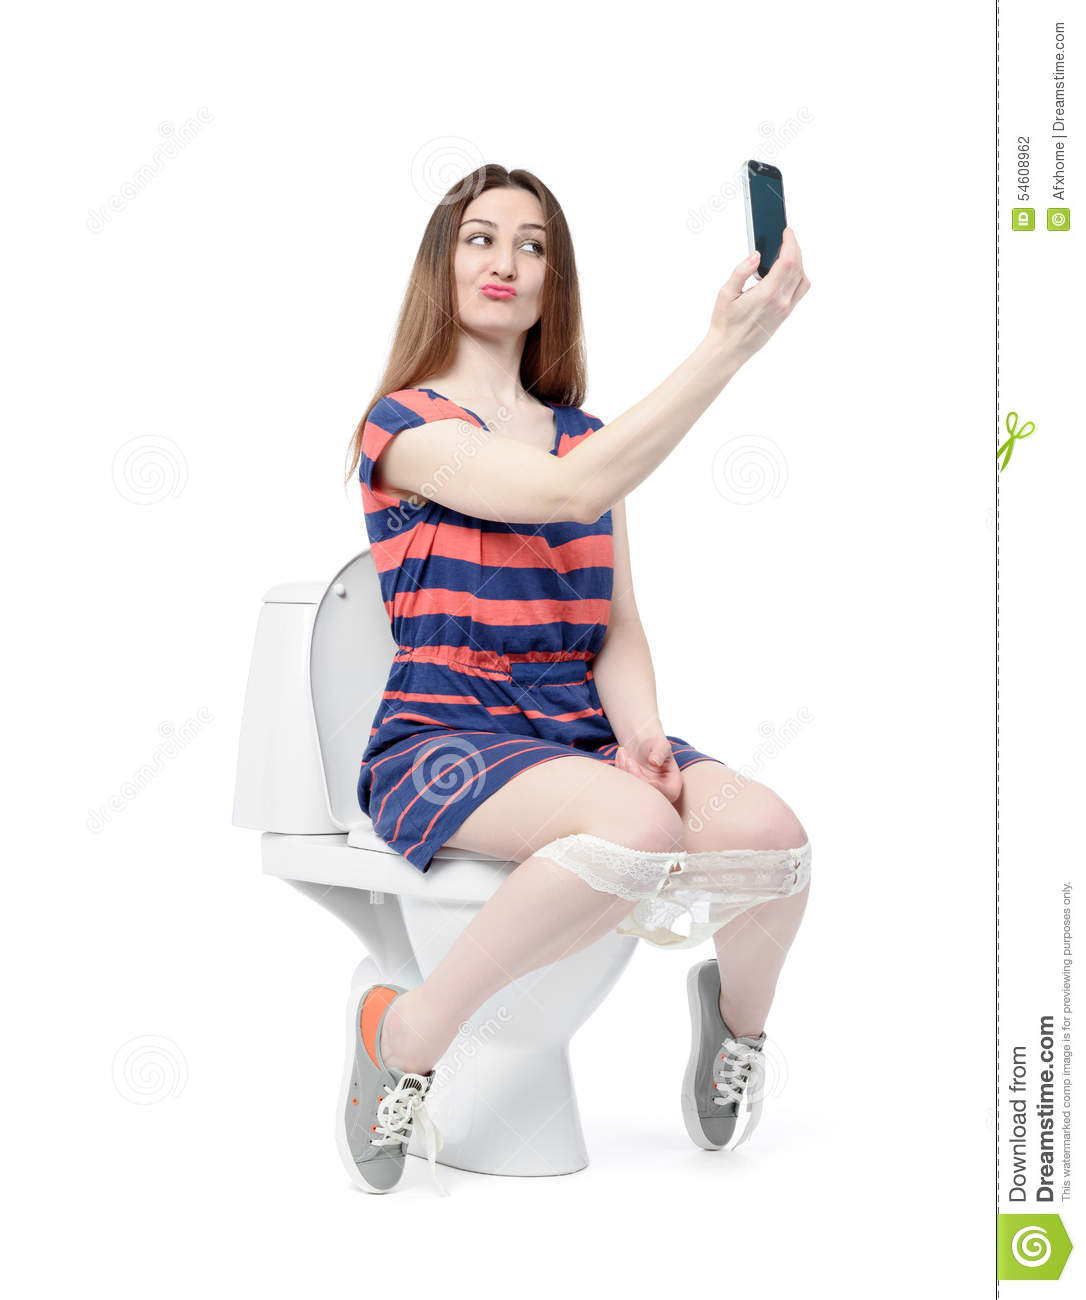 Girls Sitting On Toilet